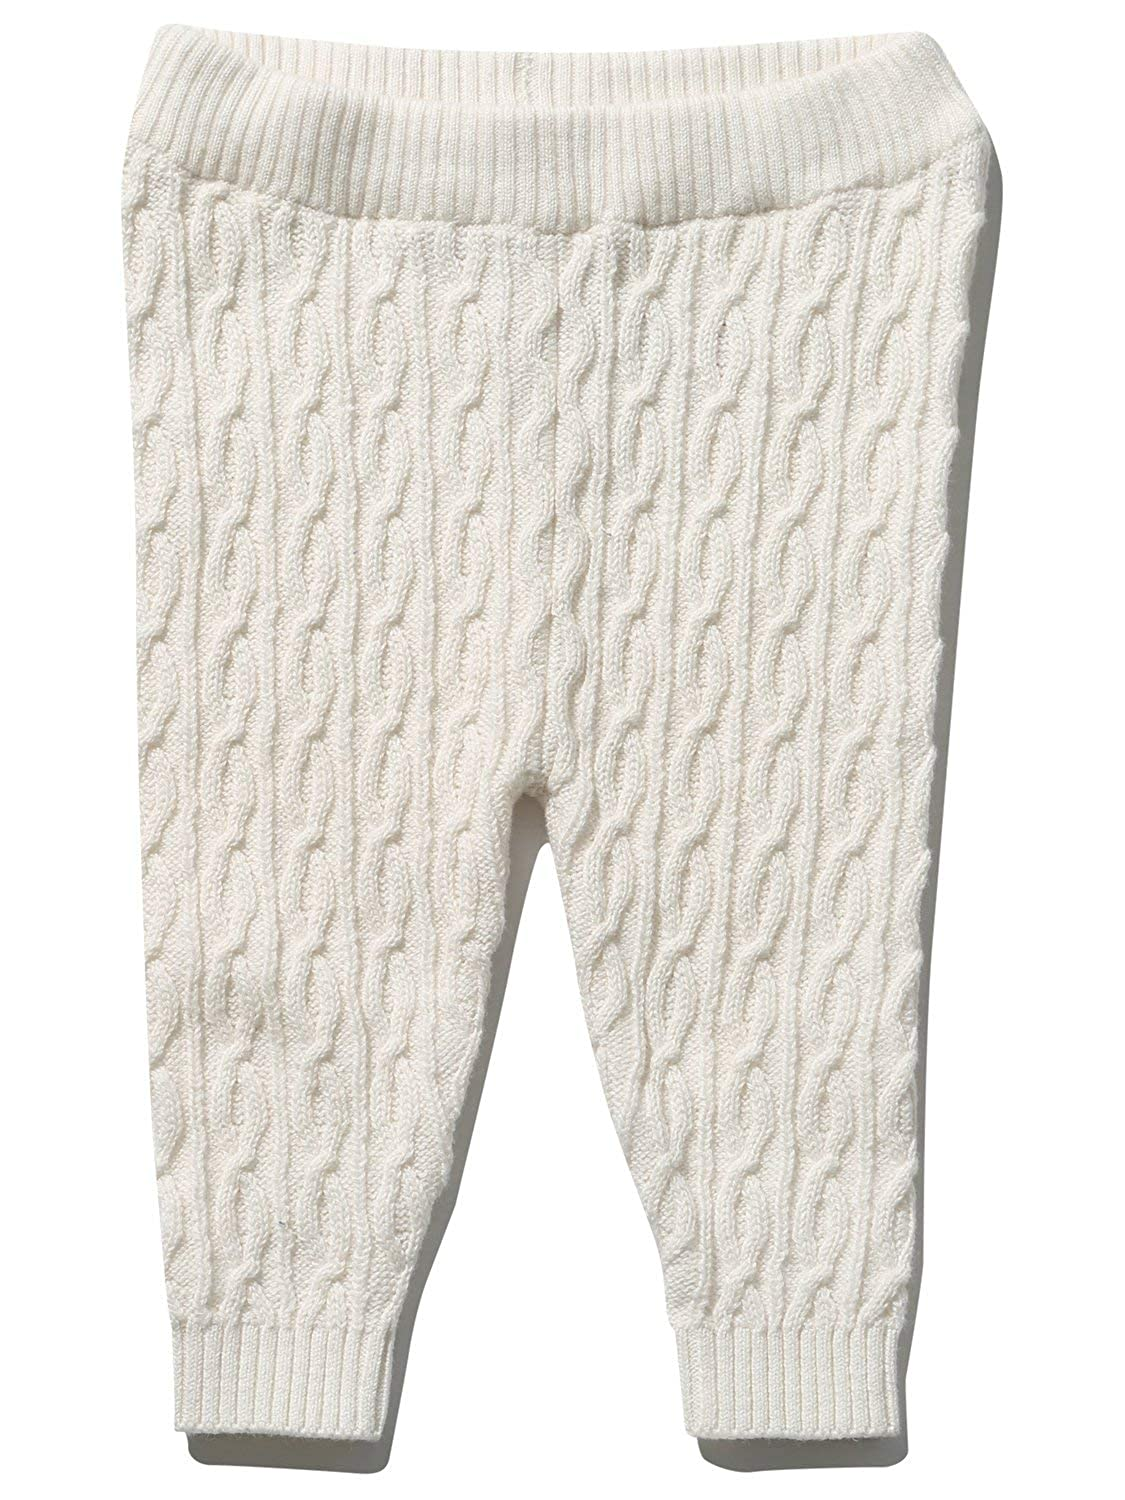 M&Co Baby Girl White Stretch Waist Cable Knit Finish Full Length Knitted Leggings